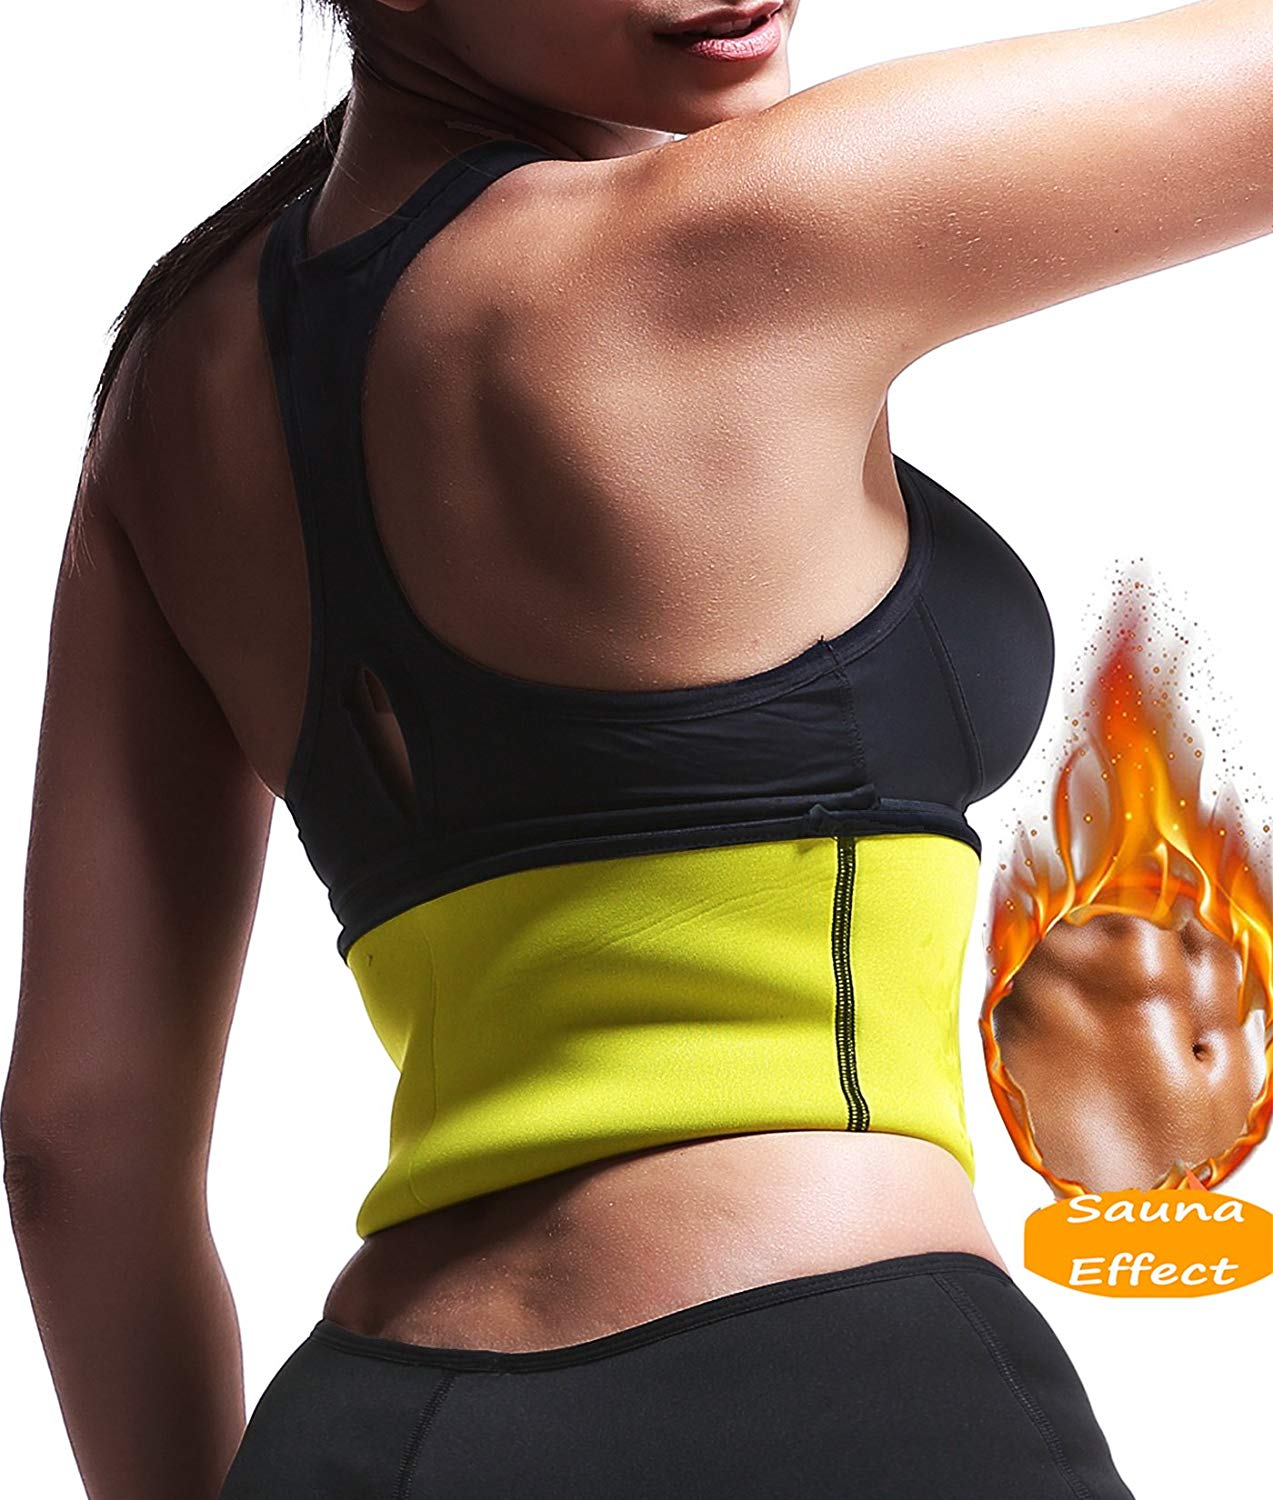 Women Sauna Waist Trimmer Belt Weight Loss Workout Trainer Hot Body Shaper Slimming Girdle Neoprene Training Cincher